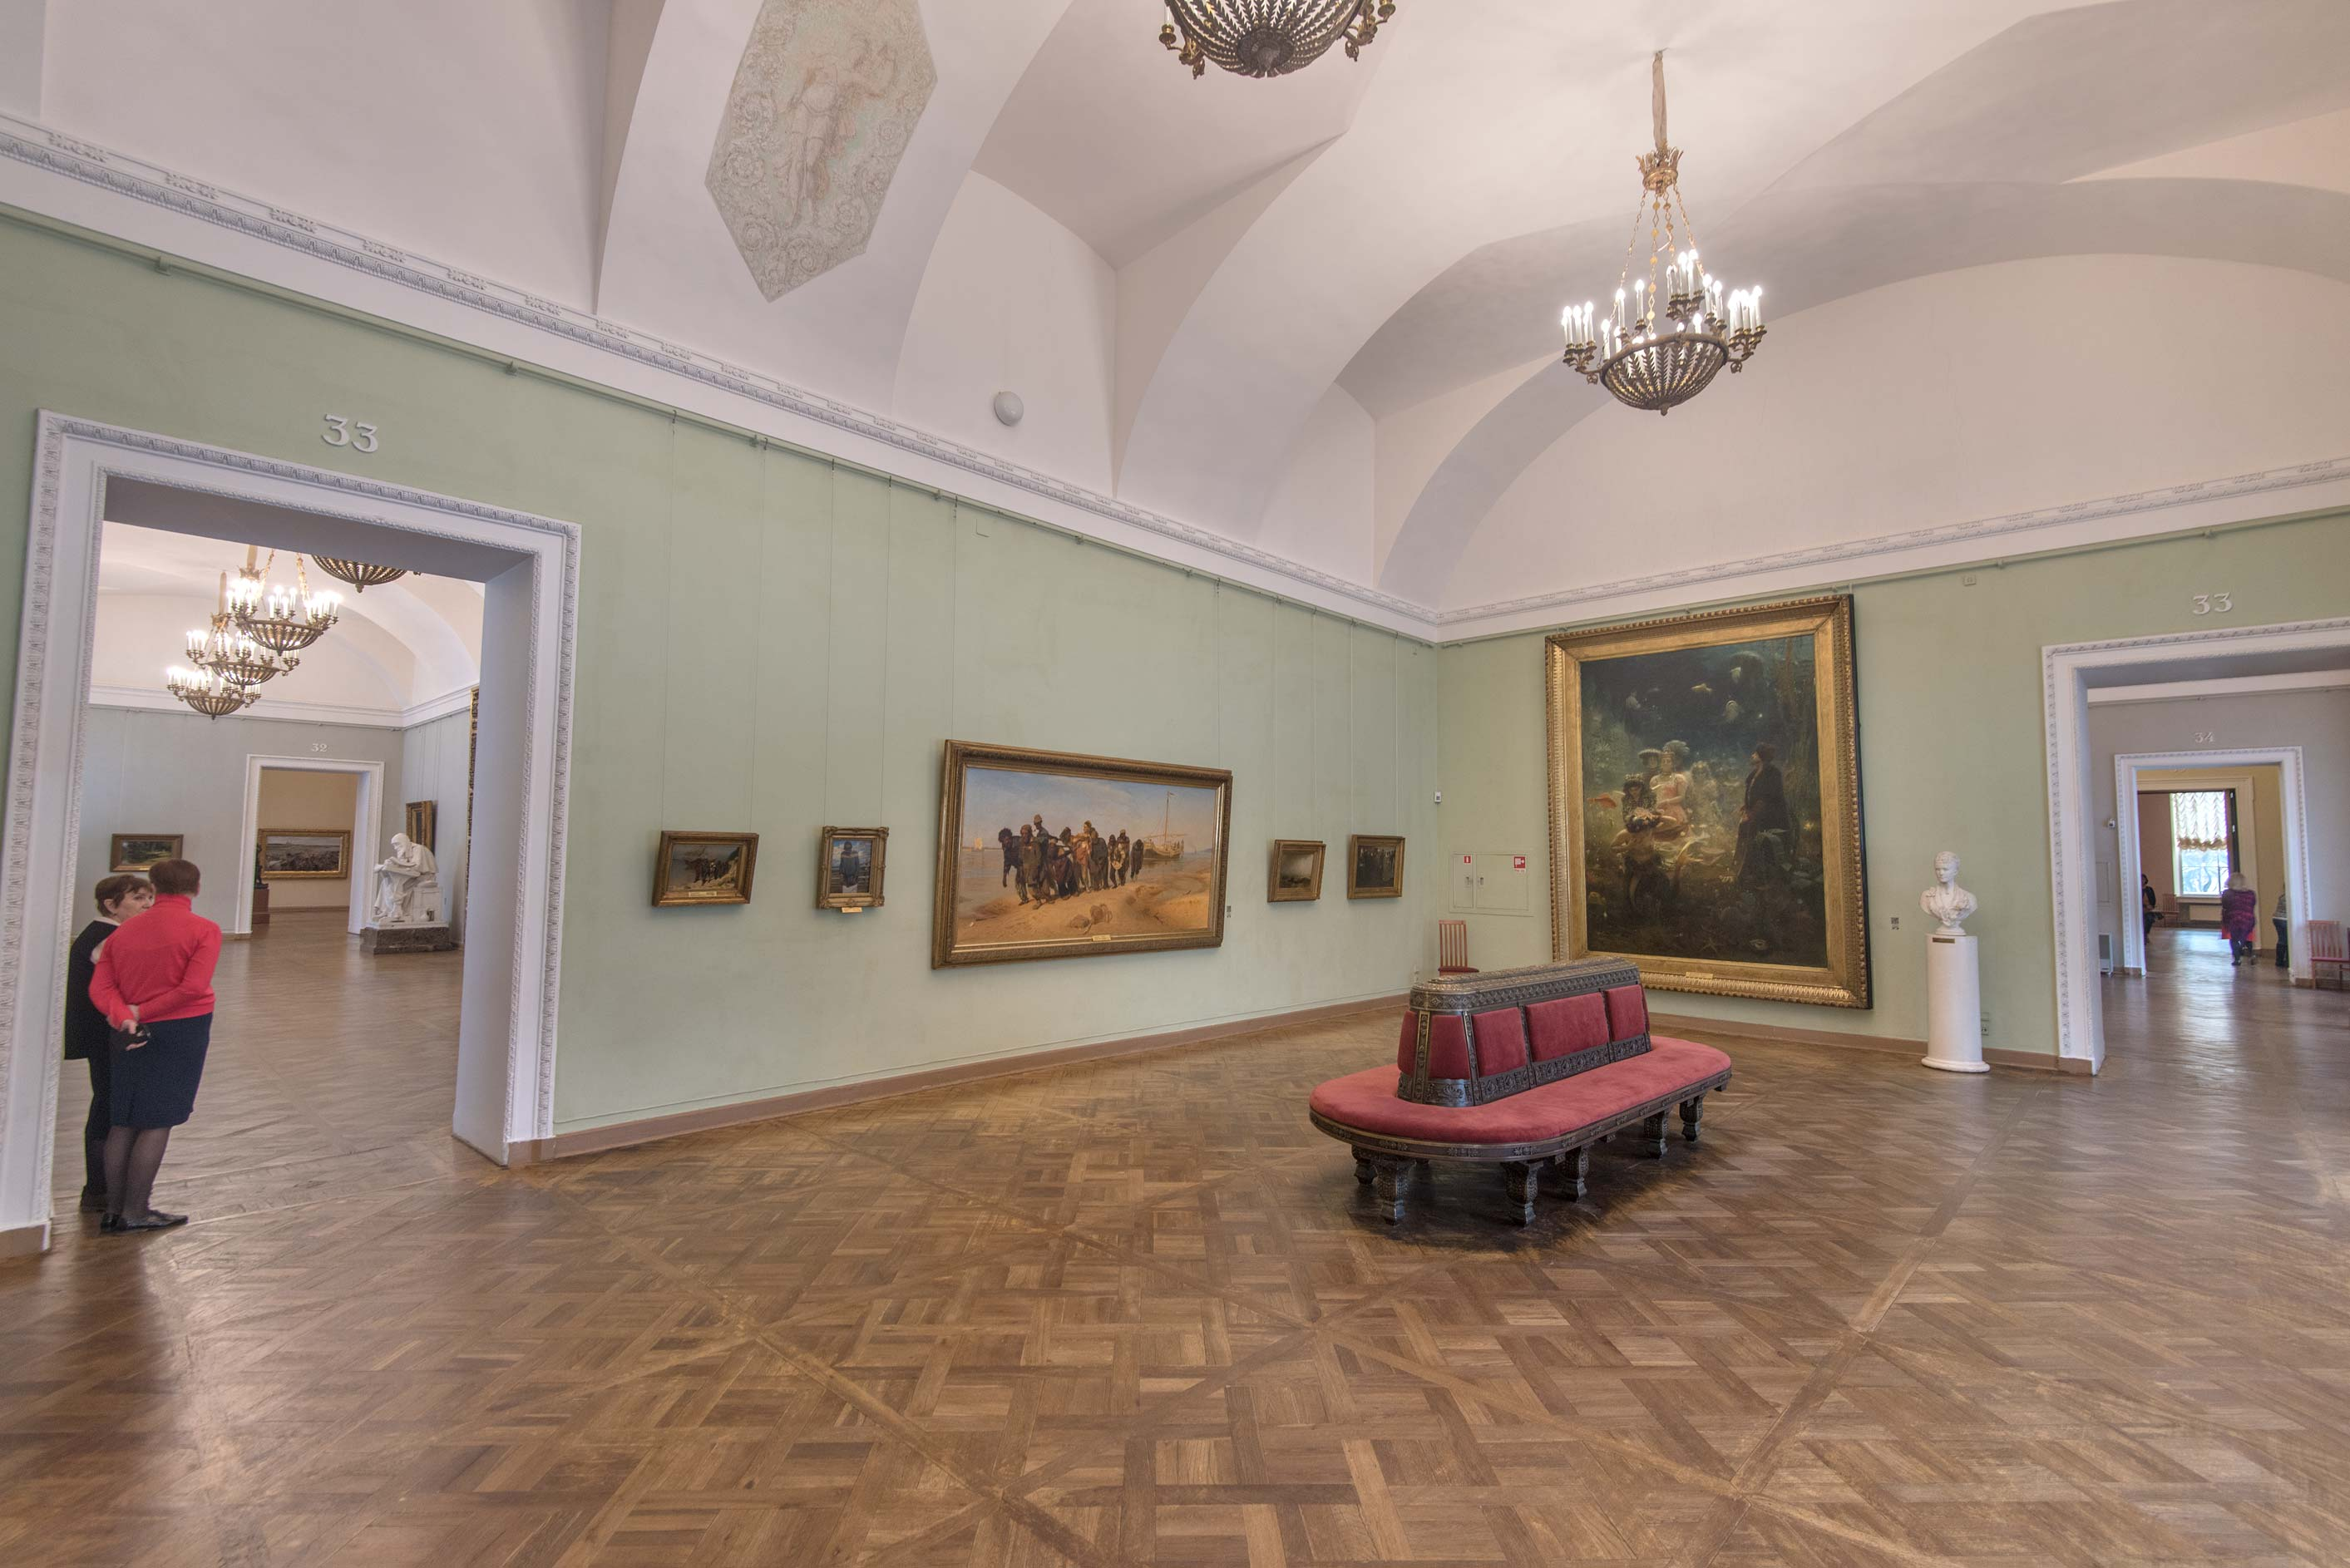 I. Repin's paintings in Russian Museum. St.Petersburg, Russia